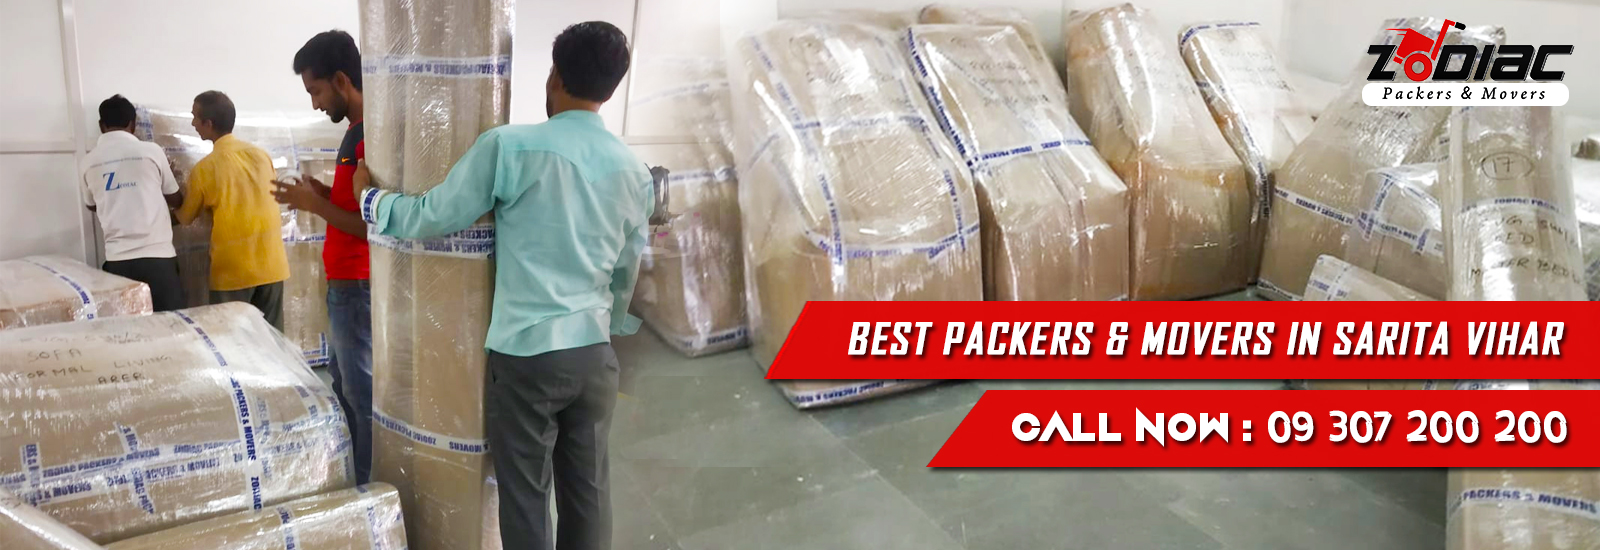 Packers and Movers in Sarita Vihar